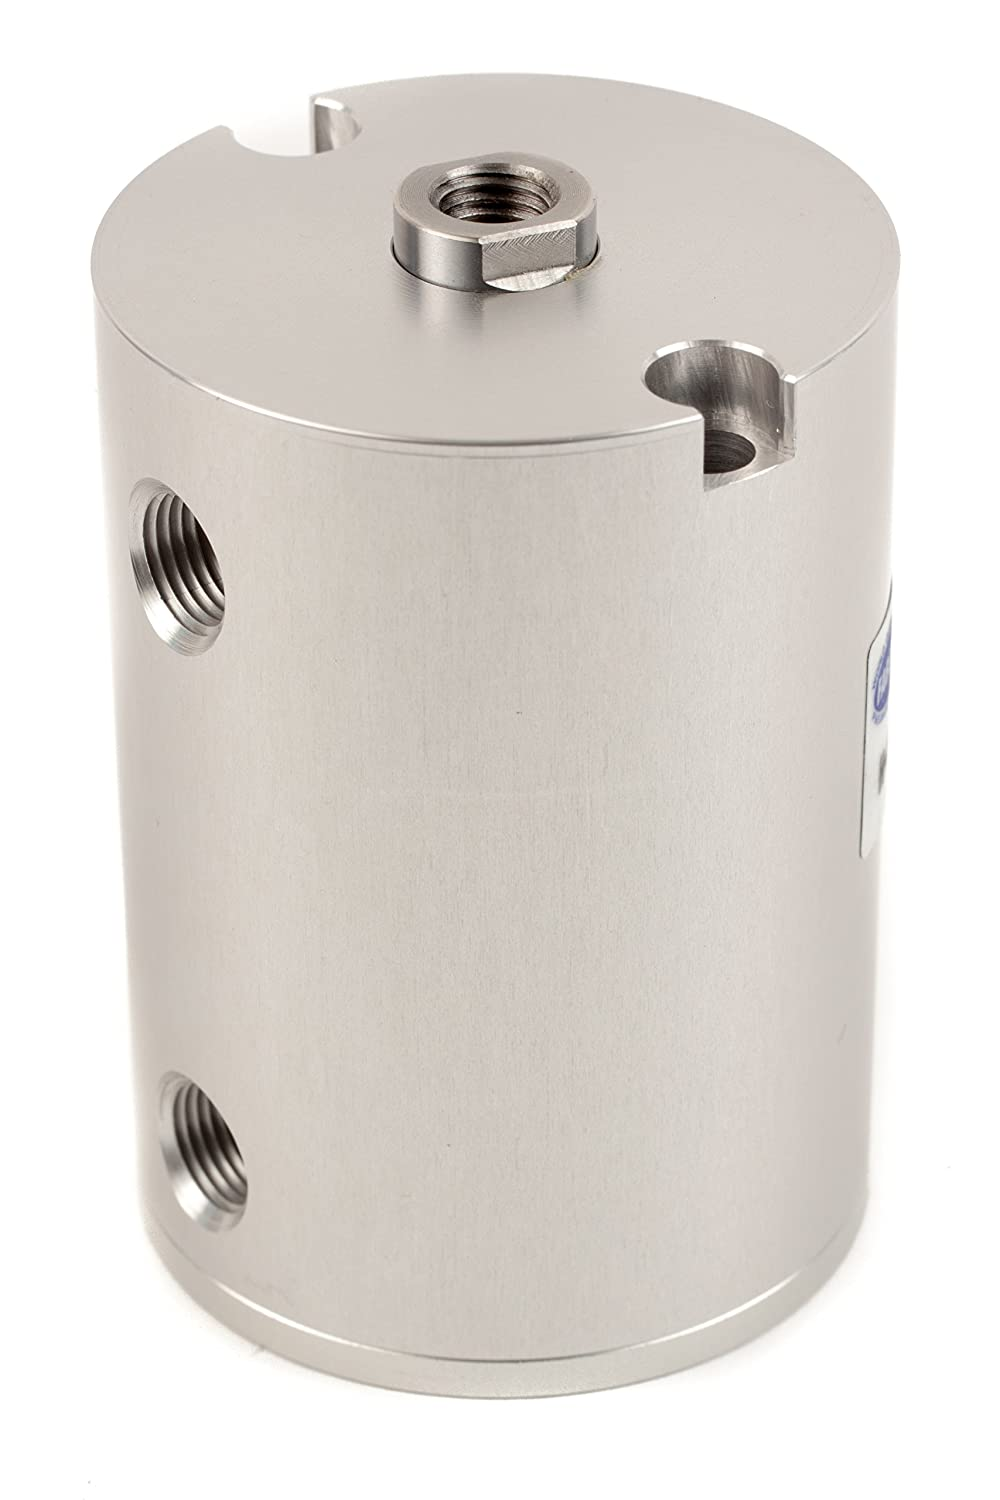 Fabco-Air H-121-X Original Pancake Cylinder, Double Acting, Maximum Pressure of 250 PSI, 1-1/8' Bore Diameter x 1-3/4' Stroke